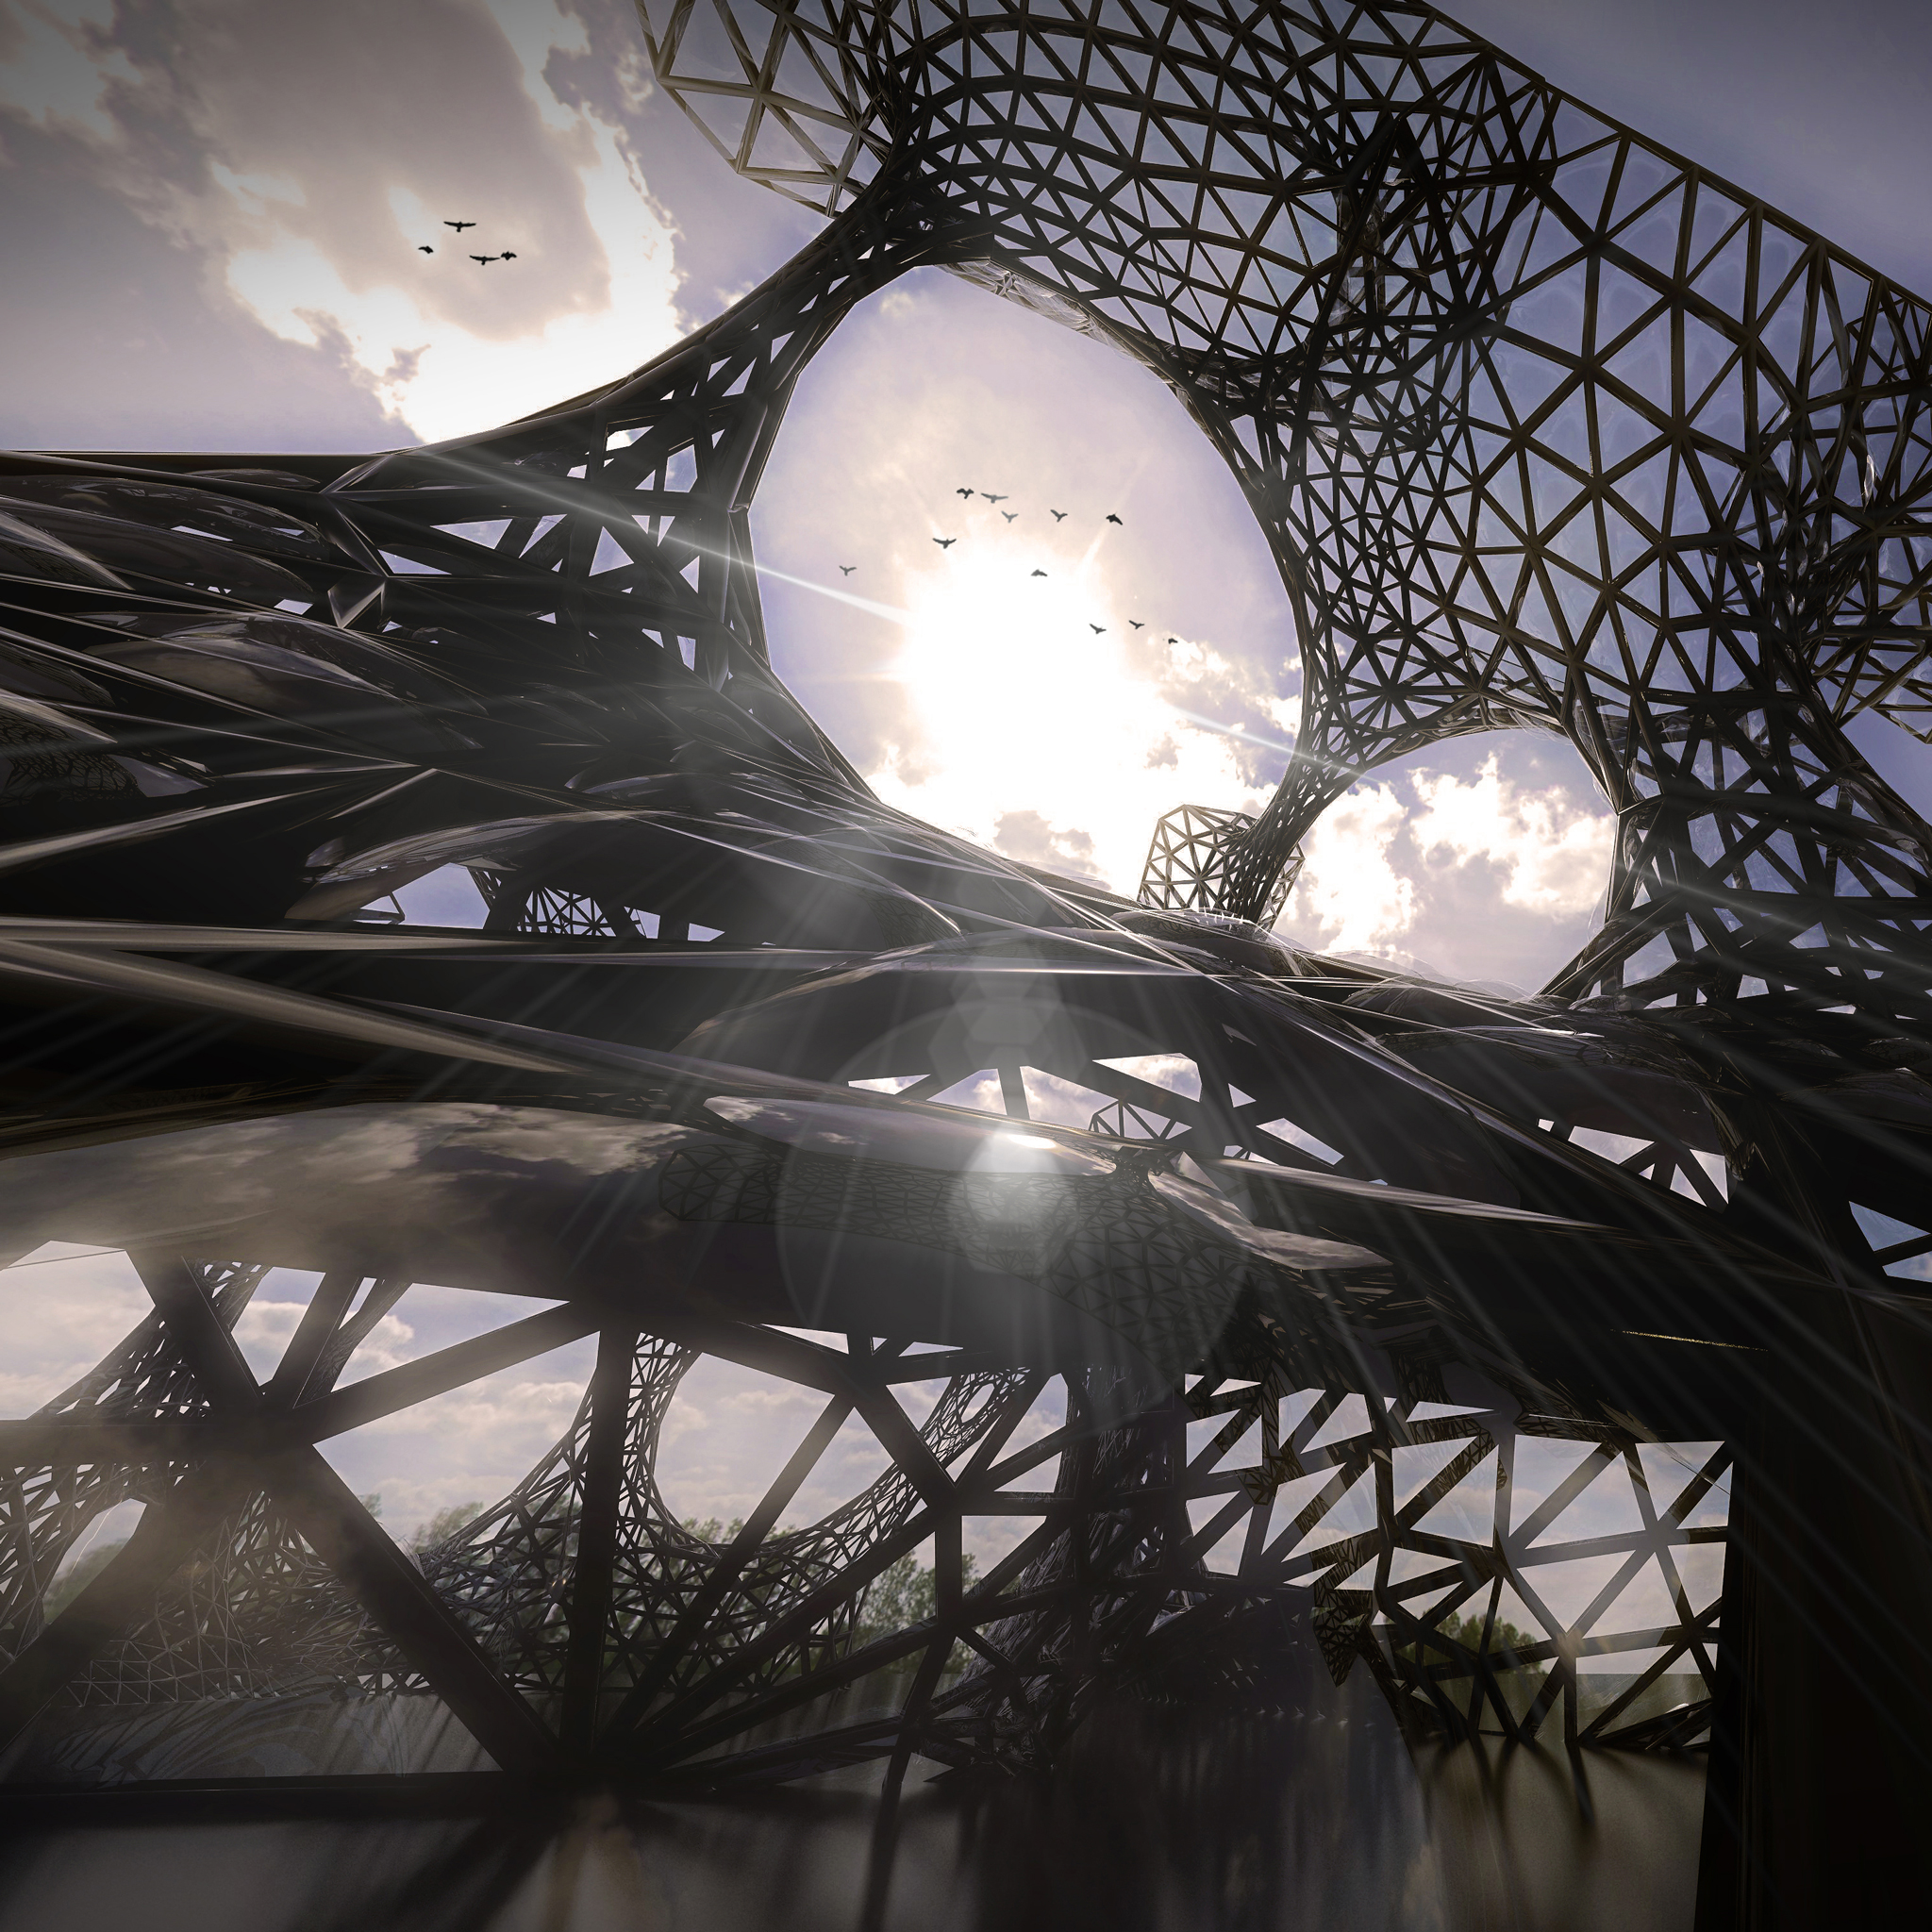 Parametric Architecture 3Wallpapers iPad Parametric Architecture   iPad